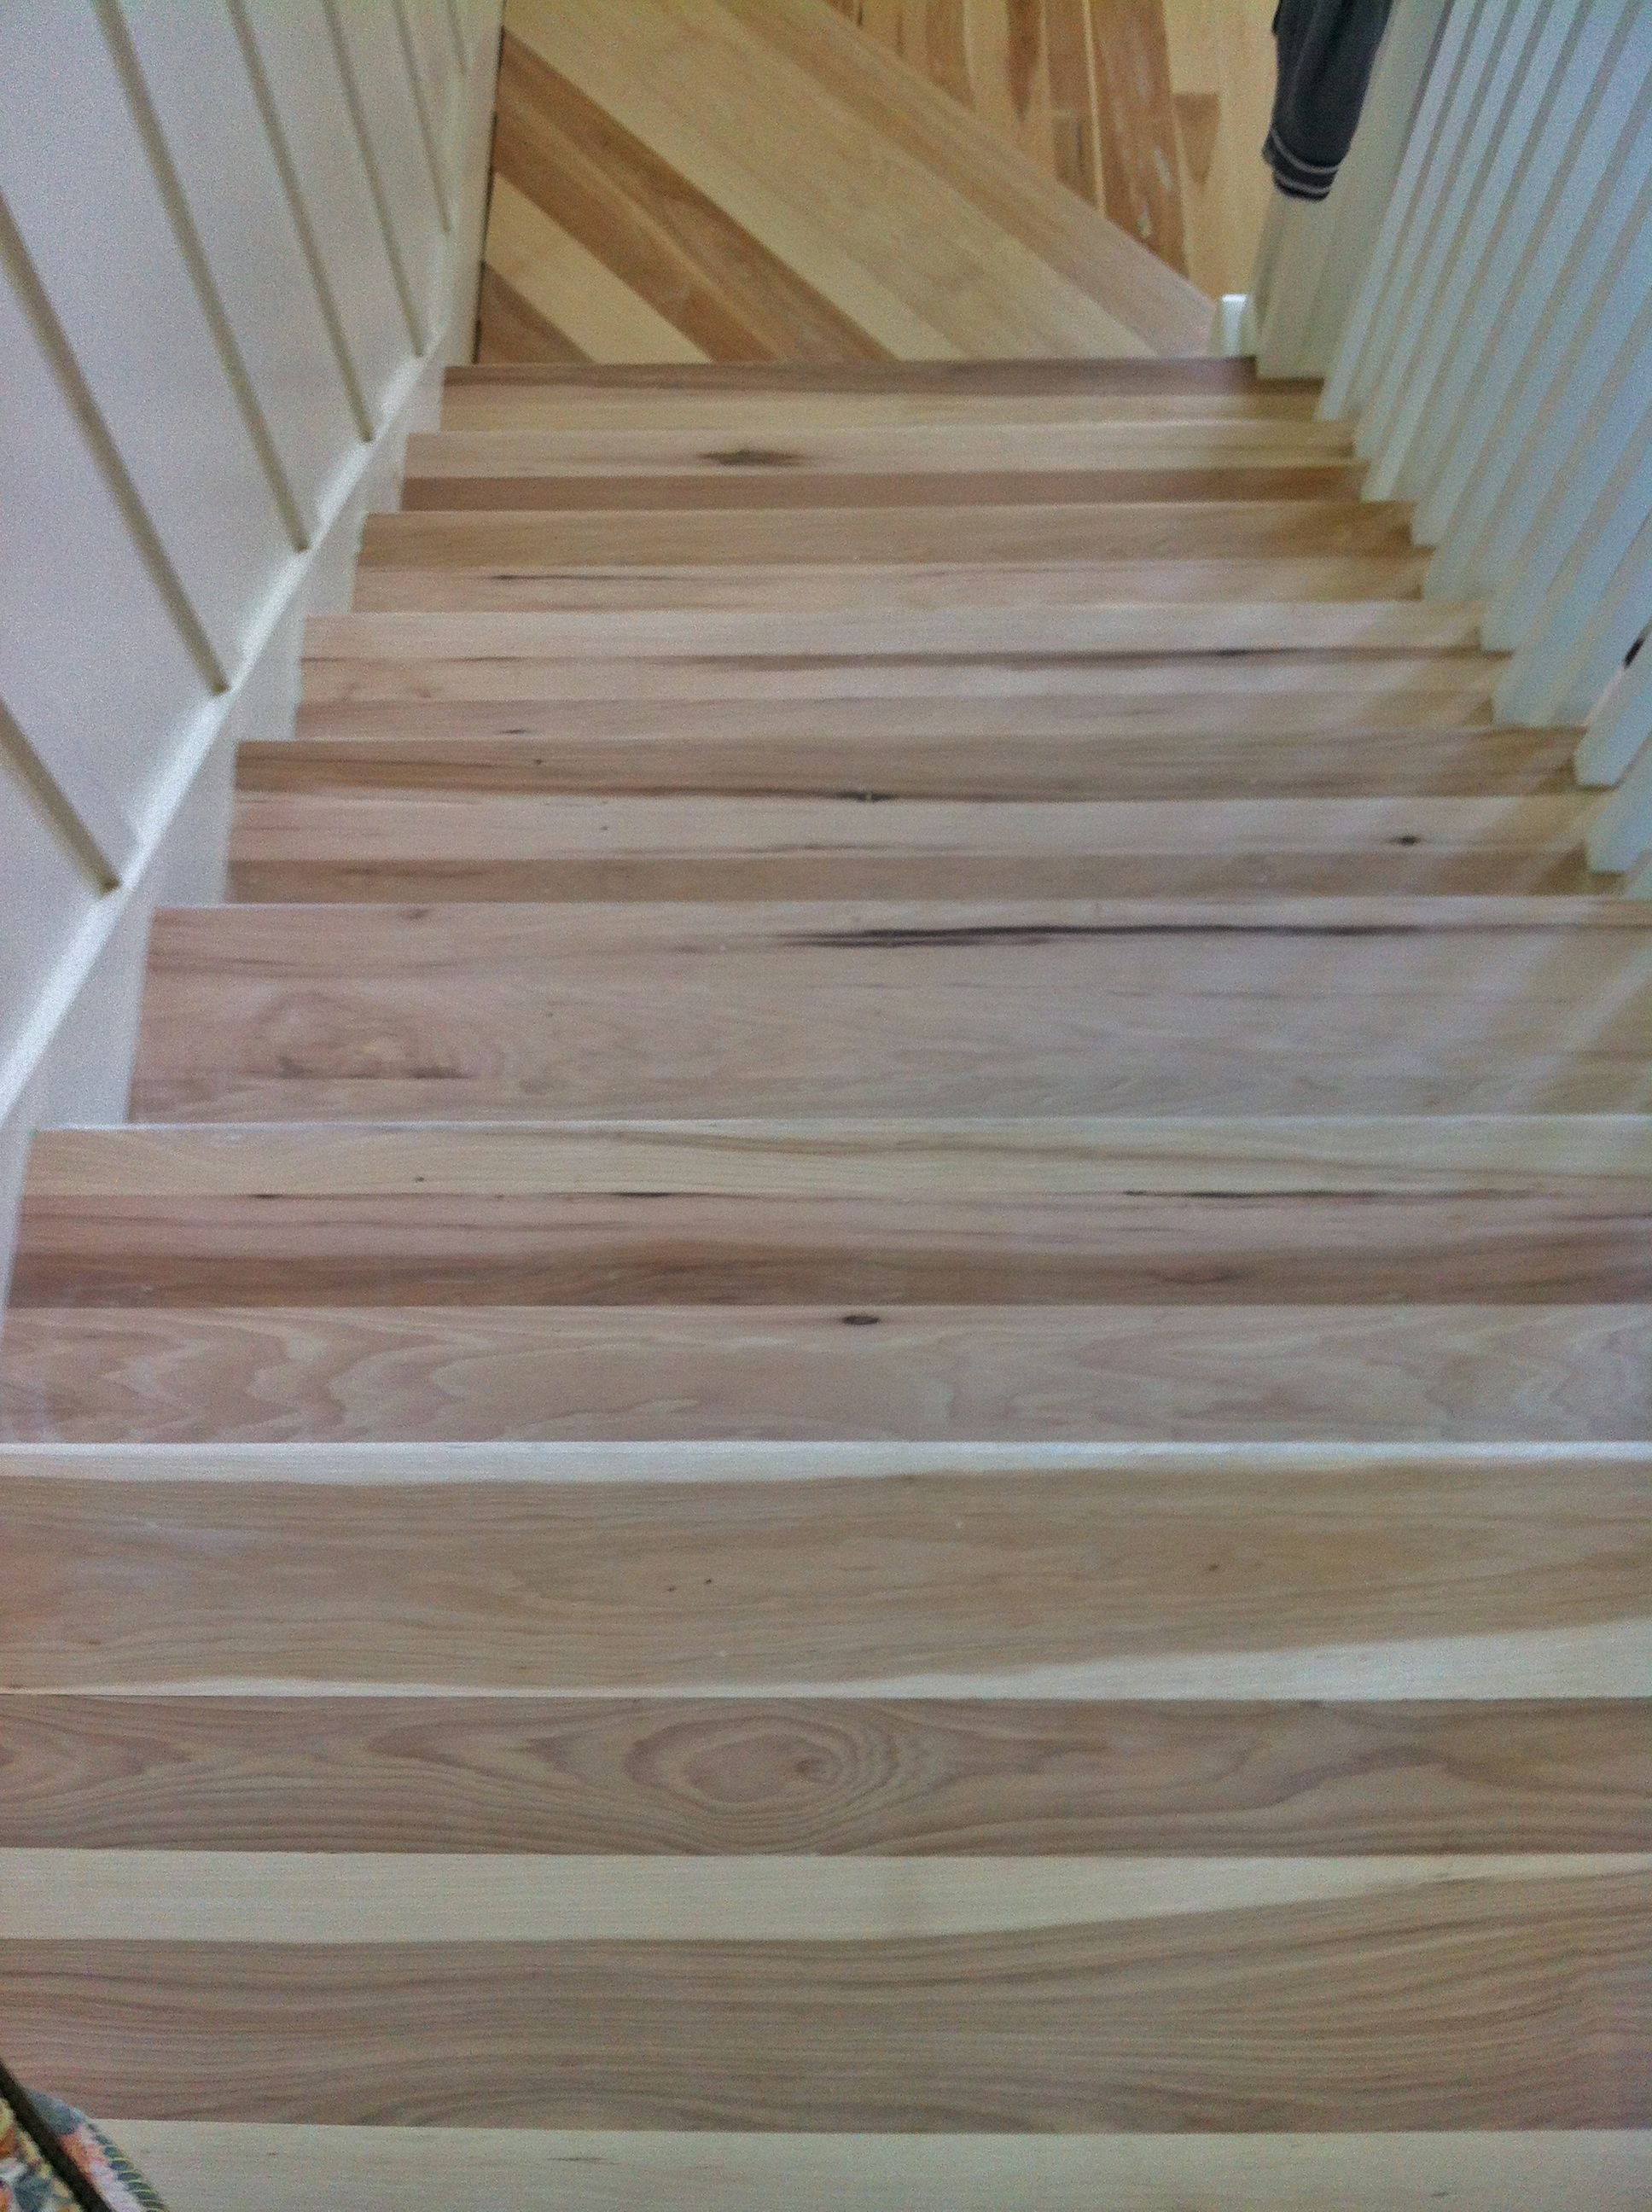 Hickory Stair Treads Before They Were Stained Dark Walnut Stair | Prefinished Hickory Stair Treads And Risers | Stair Parts | Hickory Natural | Stairtek | Natural Prefinished | Oak Stair Nosing